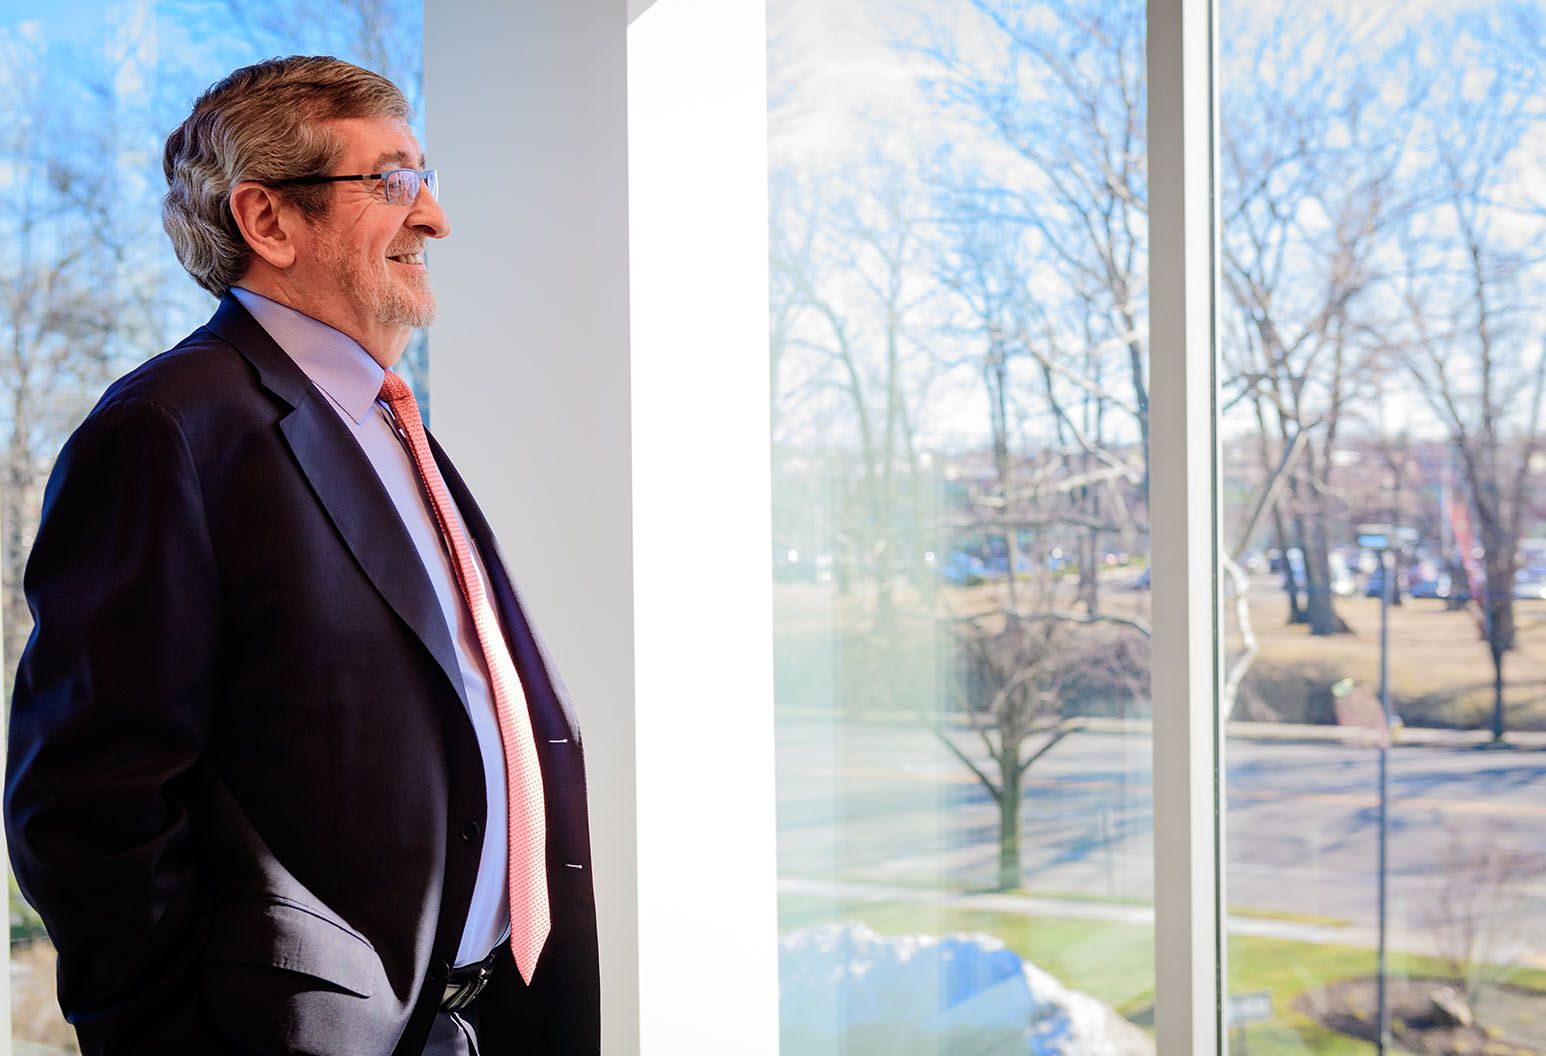 Michael Dowling, President and CEO looks out into the distance with a smile on his face